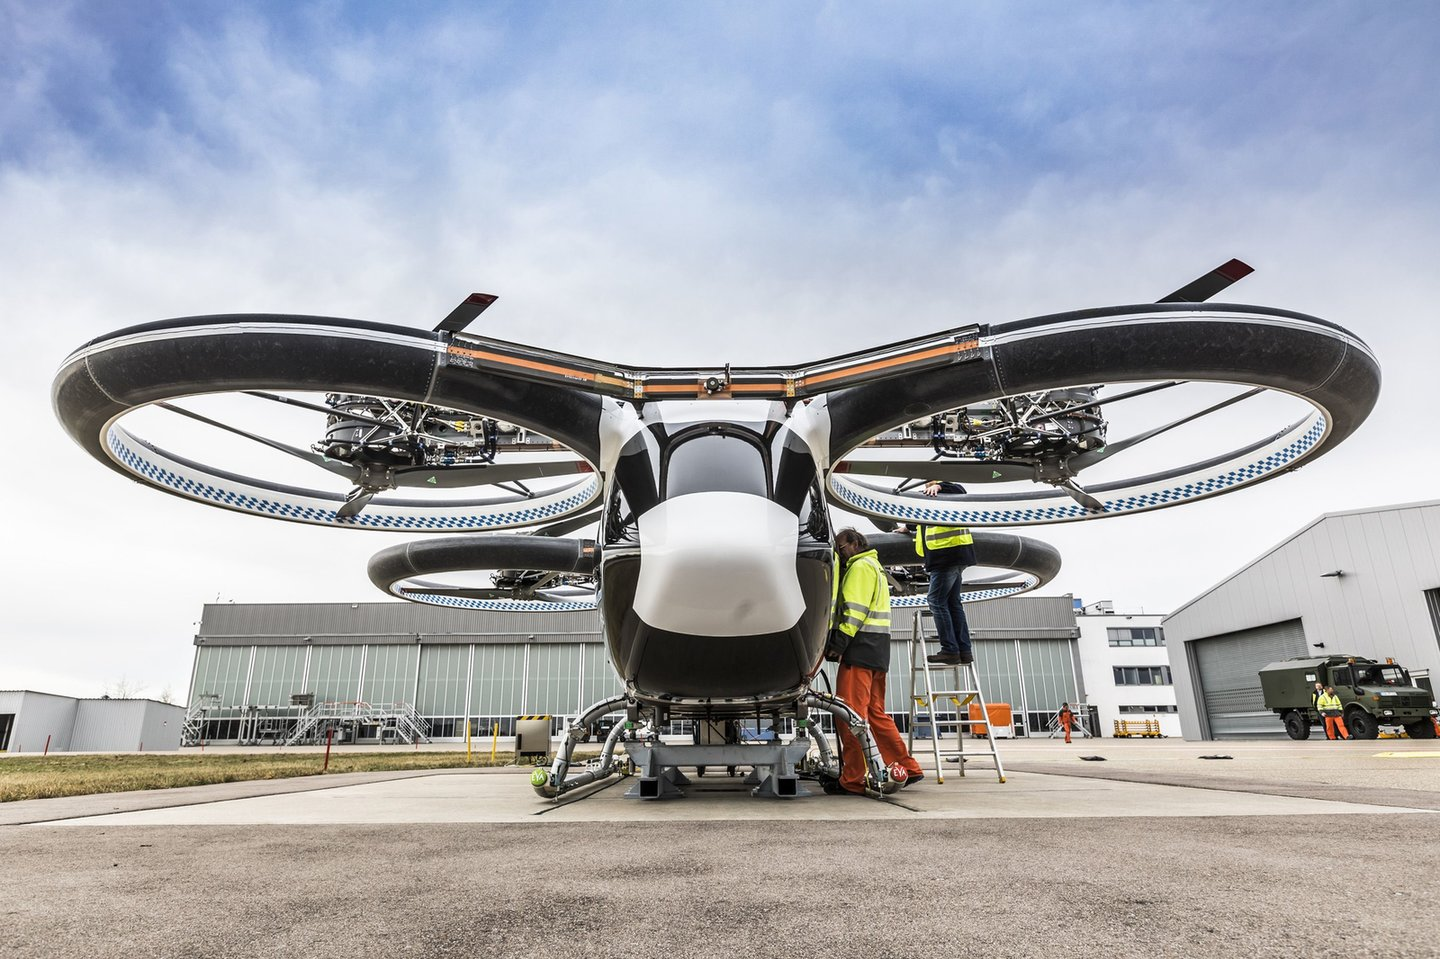 The commercial aerospace sector is leading the urban air mobility revolution